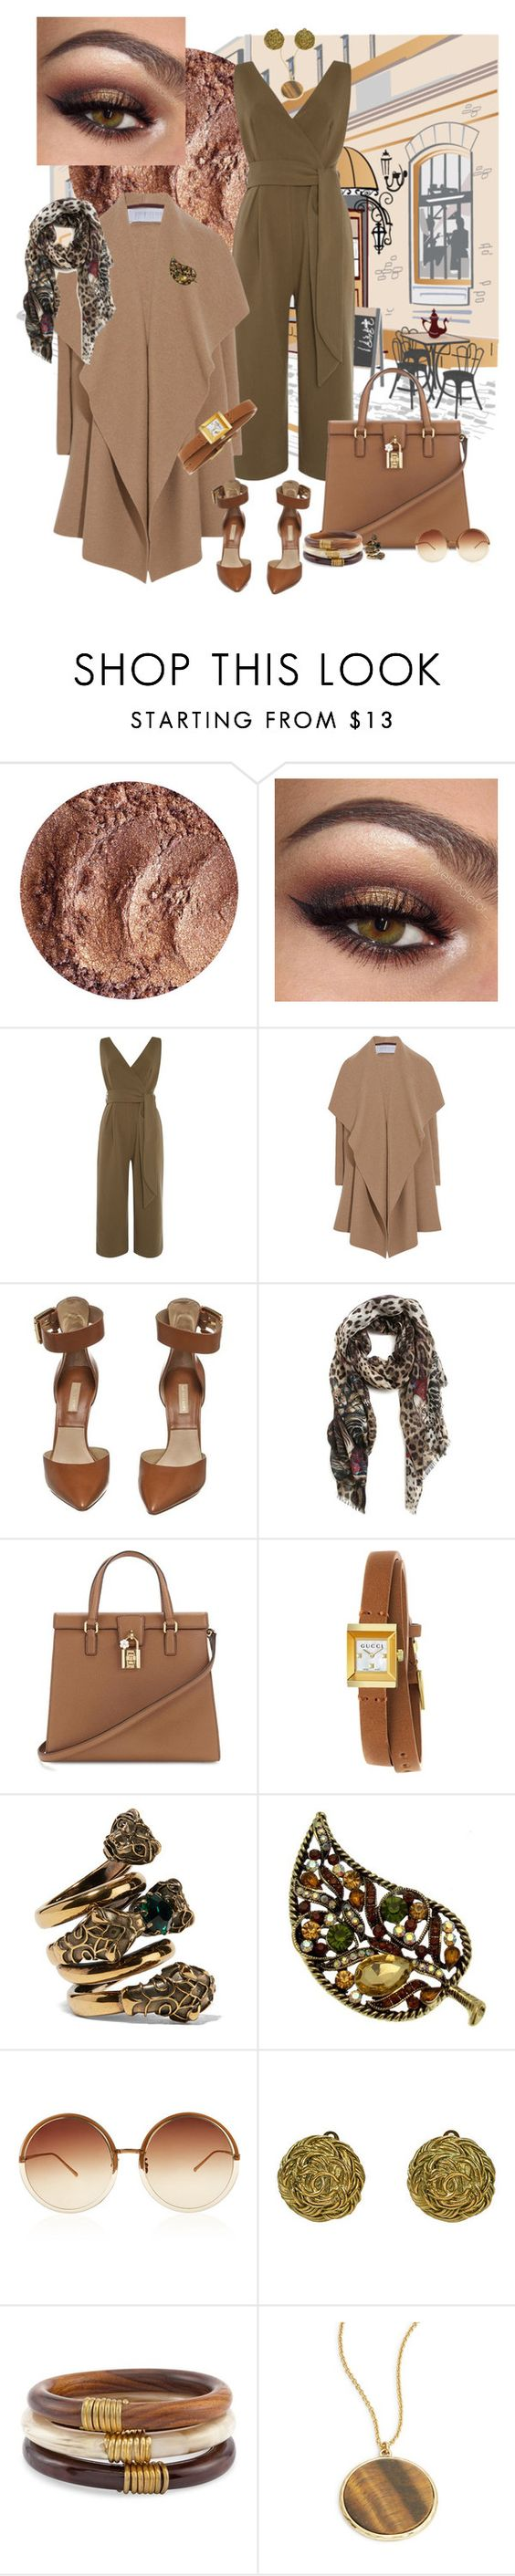 """""""Earth Tones in the Afternoon"""" by anitamauro ❤ liked on Polyvore featuring Lost Ink, Harris Wharf London, Michael Kors, Dolce&Gabbana, Gucci, Linda Farrow, Chico's and Lauren Ralph Lauren"""